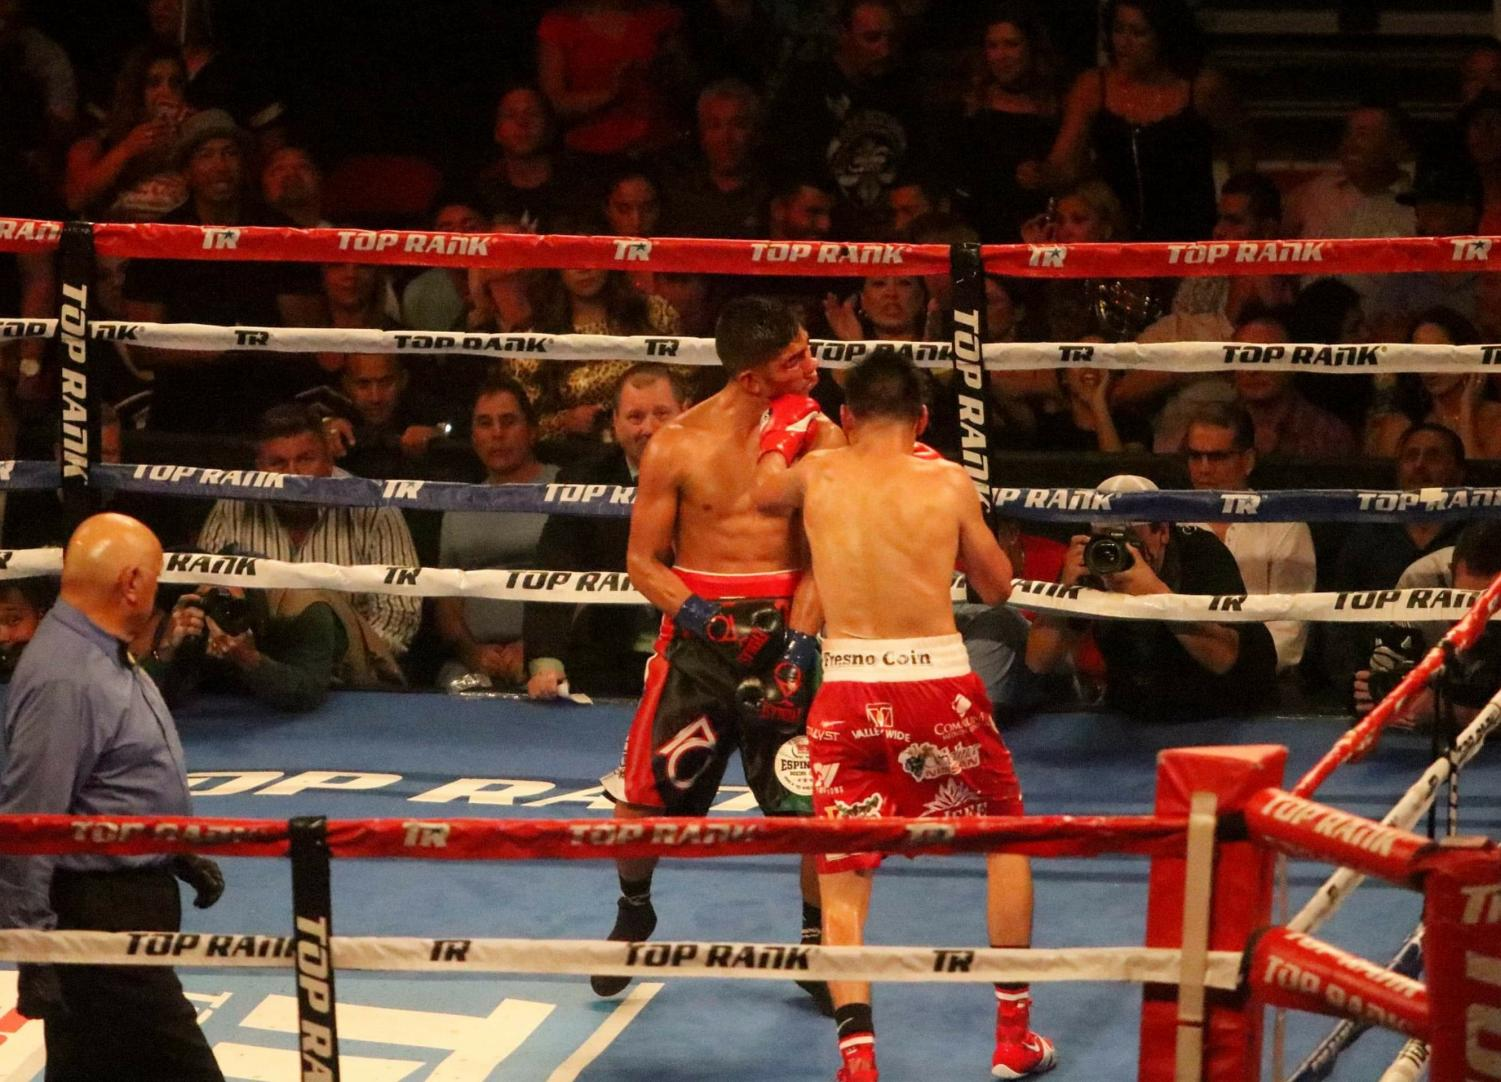 World champion Jose Ramirez connects on a devastating left hook to Antonio Orozco at the Save Mart Center on Friday, Sept. 14.